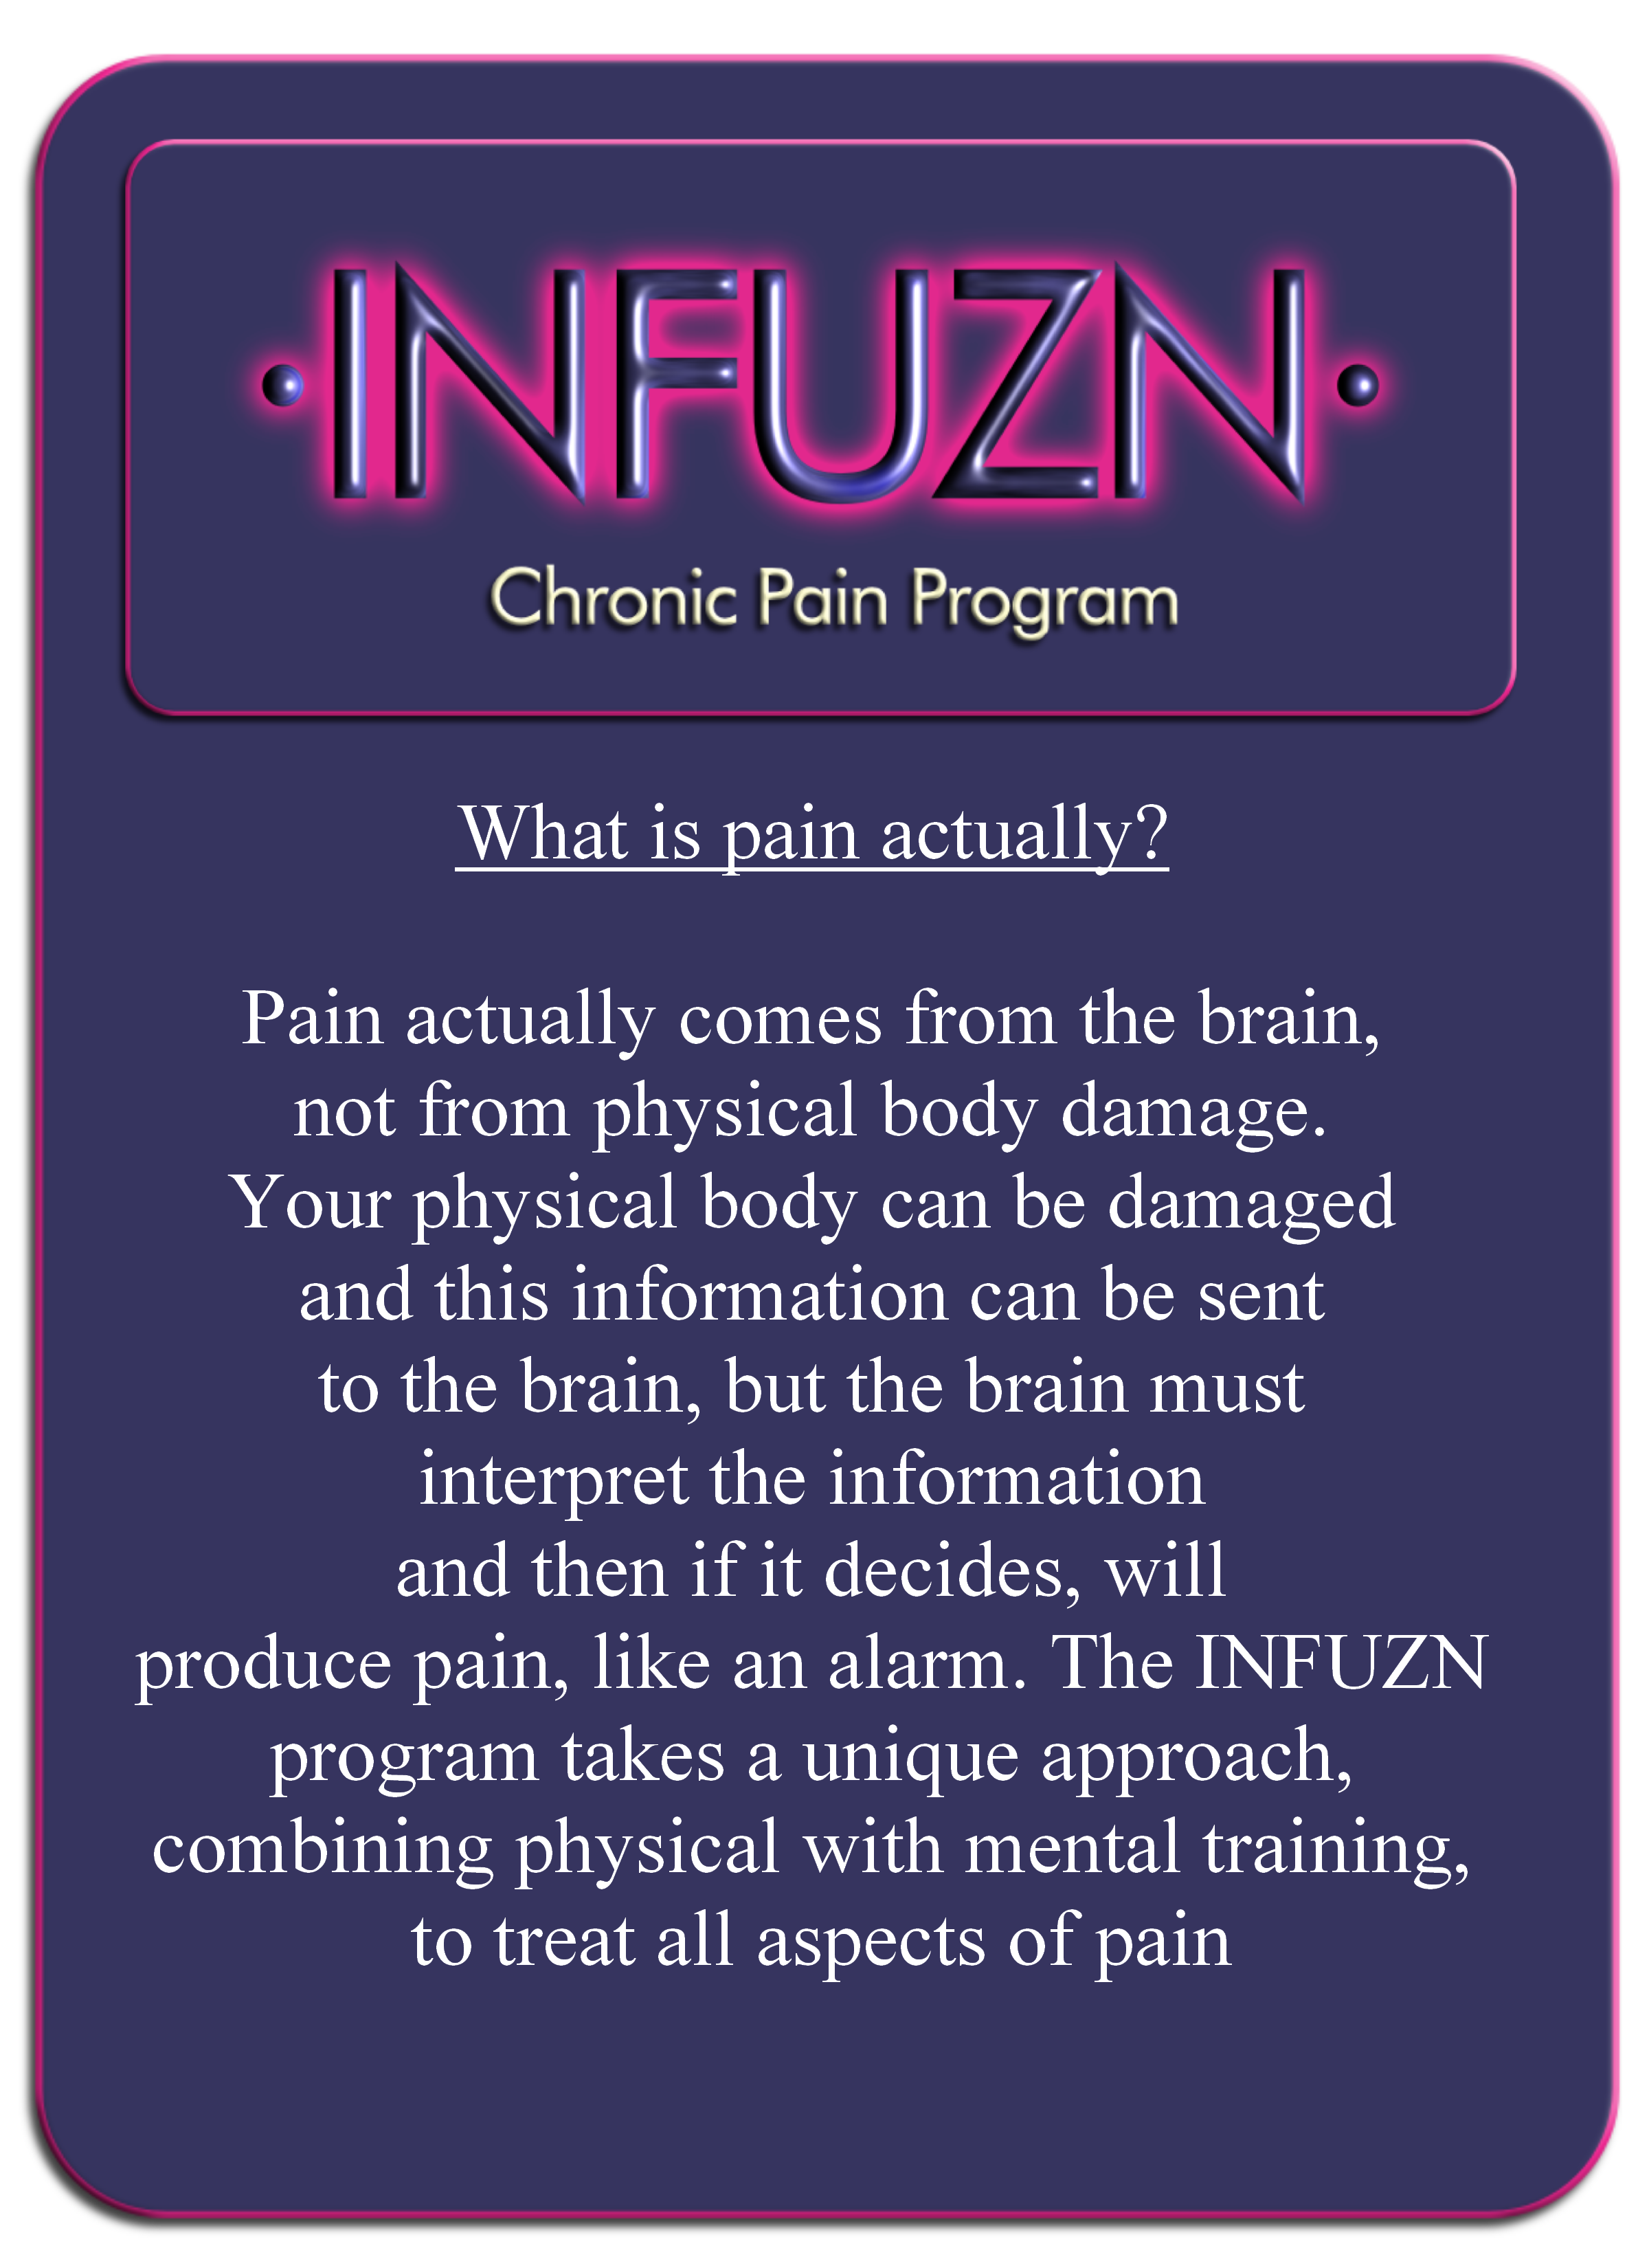 INFUZN flyer more info.PNG